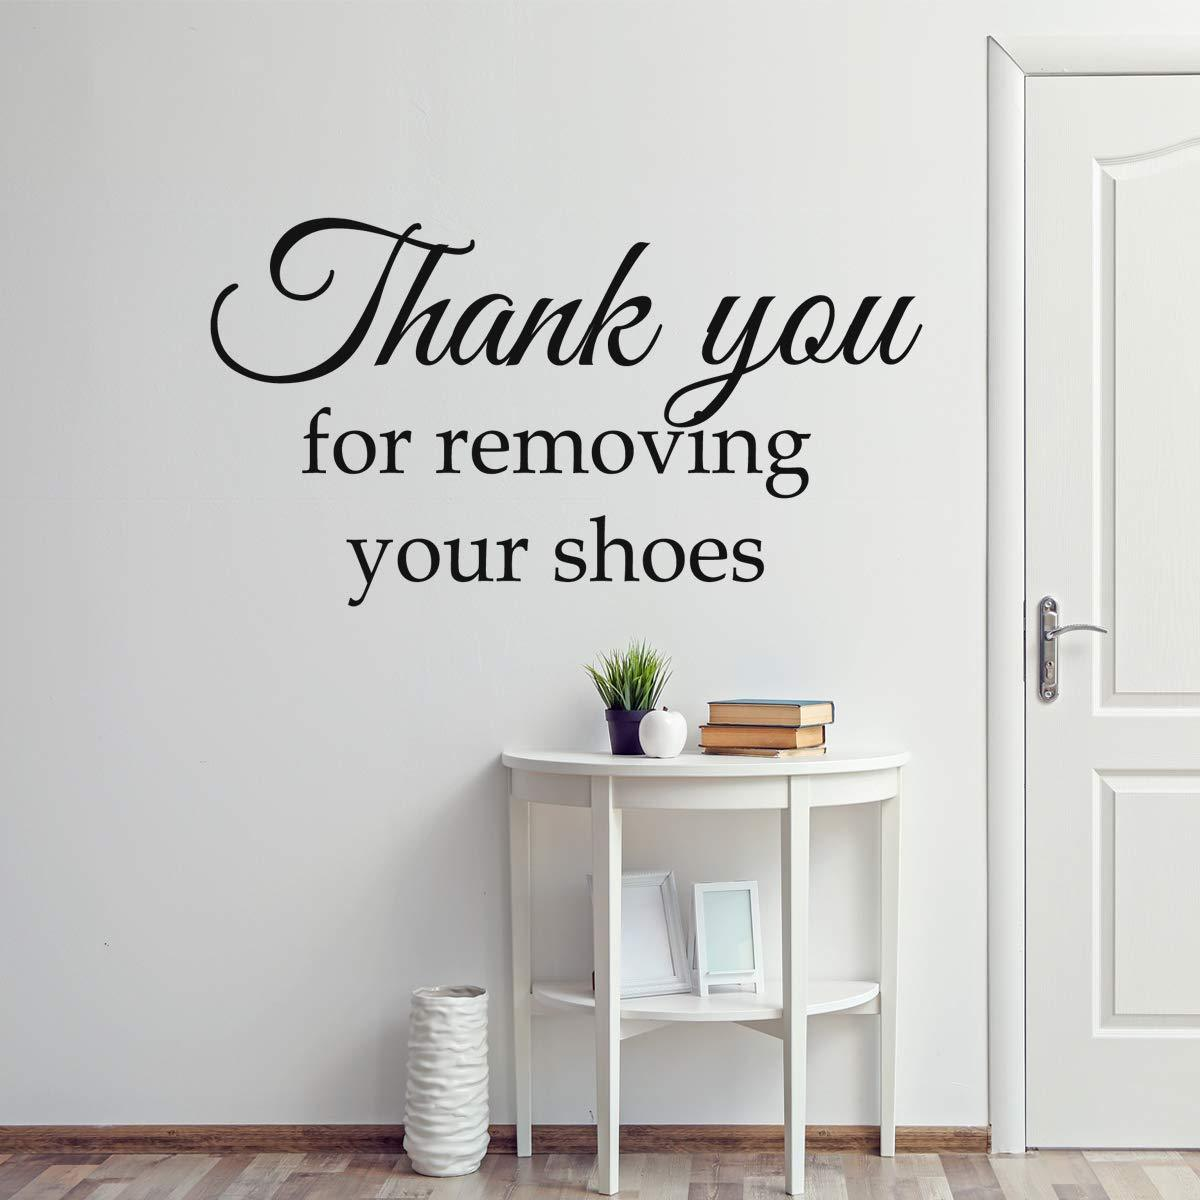 VWAQ Thank You for Removing Your Shoes Wall Decal Entryway Decor Mudroom Decoration - VWAQ Vinyl Wall Art Quotes and Prints